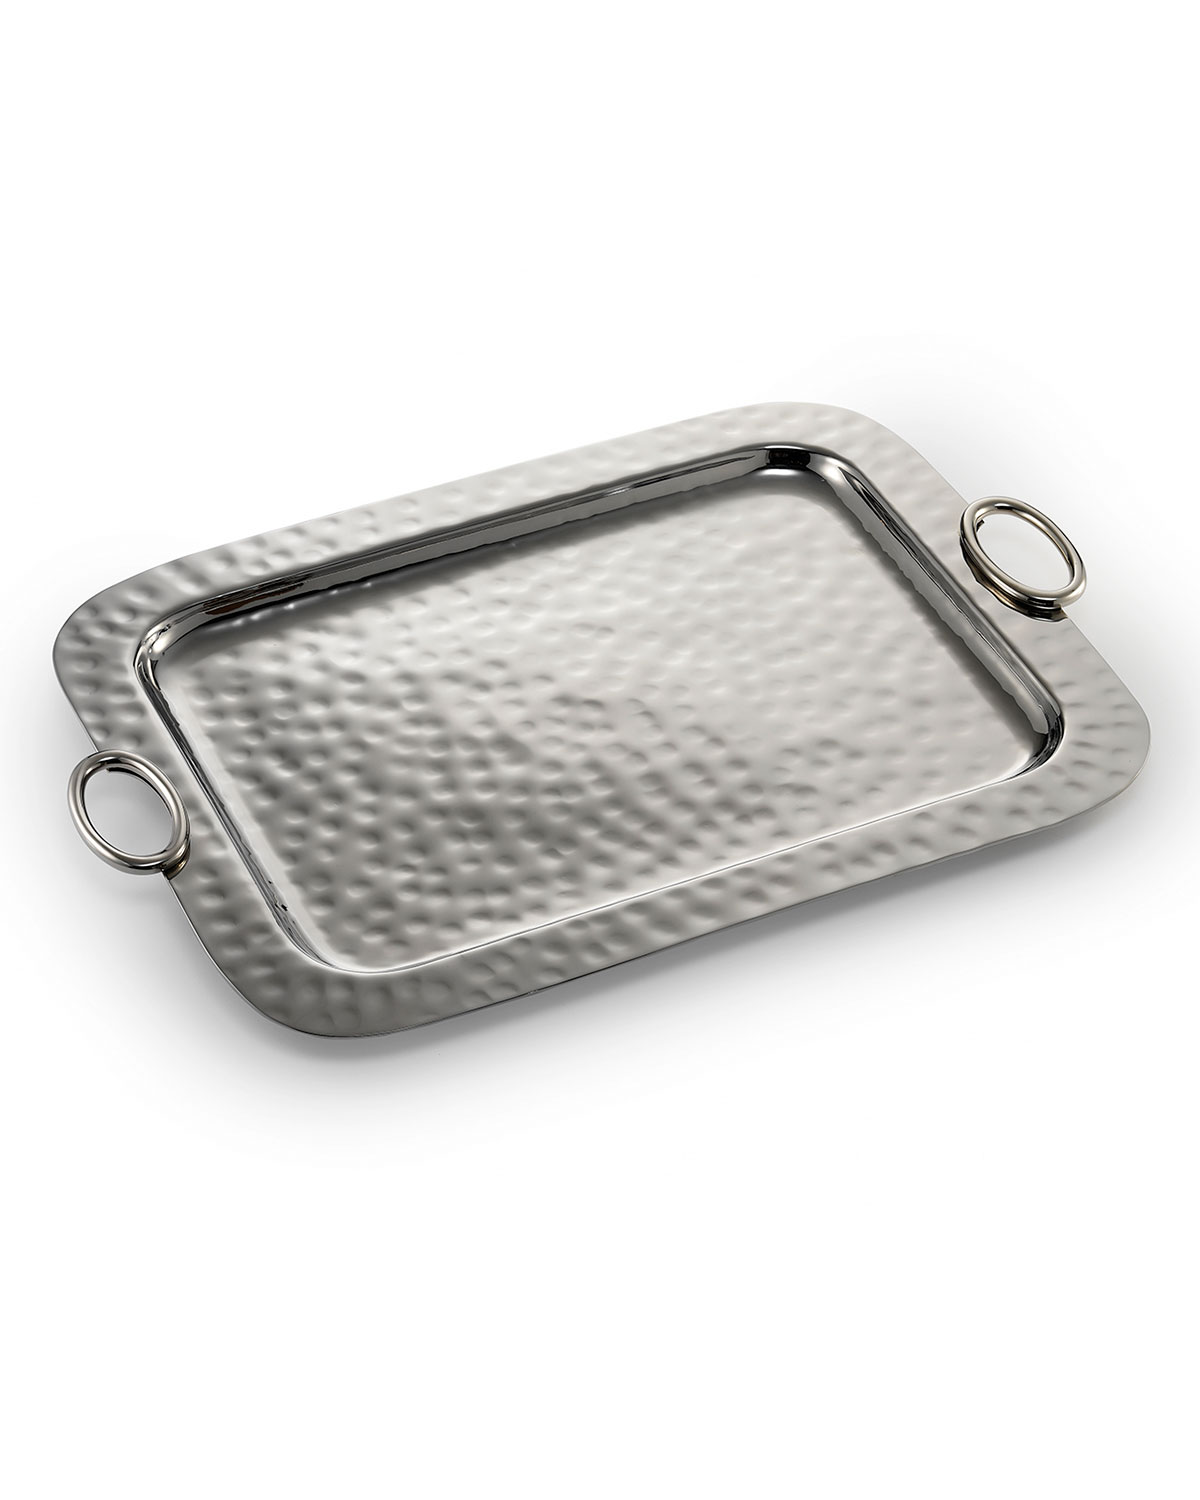 Mary Jurek Hammered Serving Tray with Ring Handles